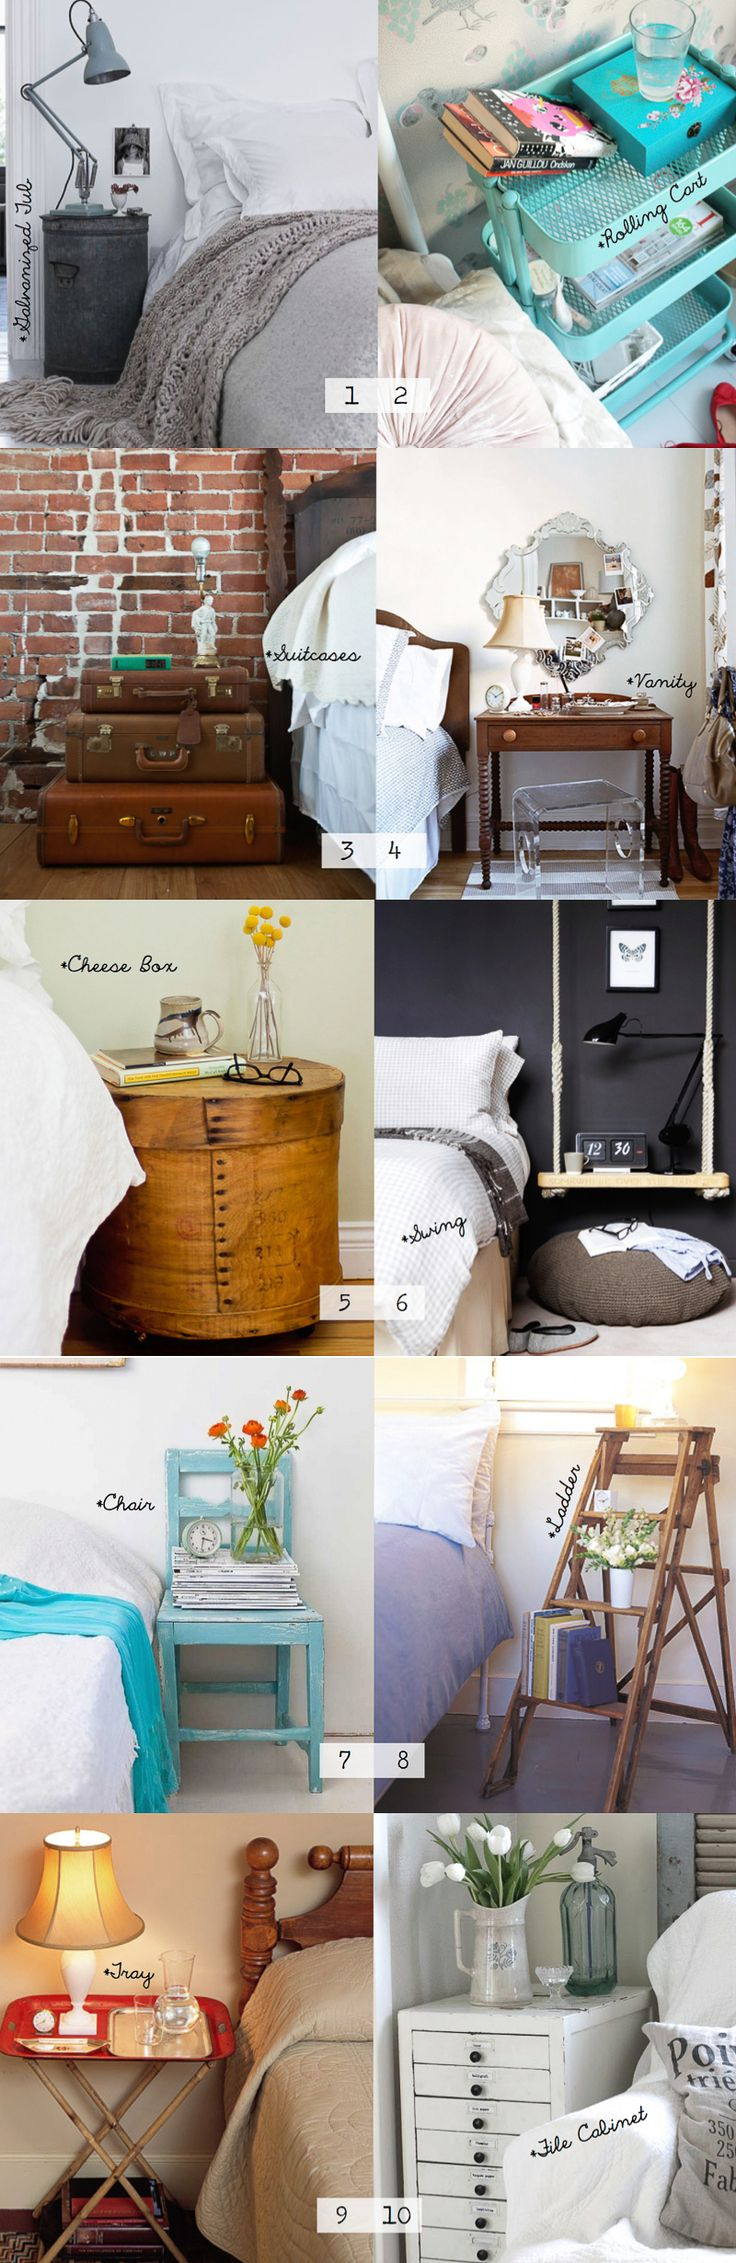 10 ideas for a fabulous and unique nightstand